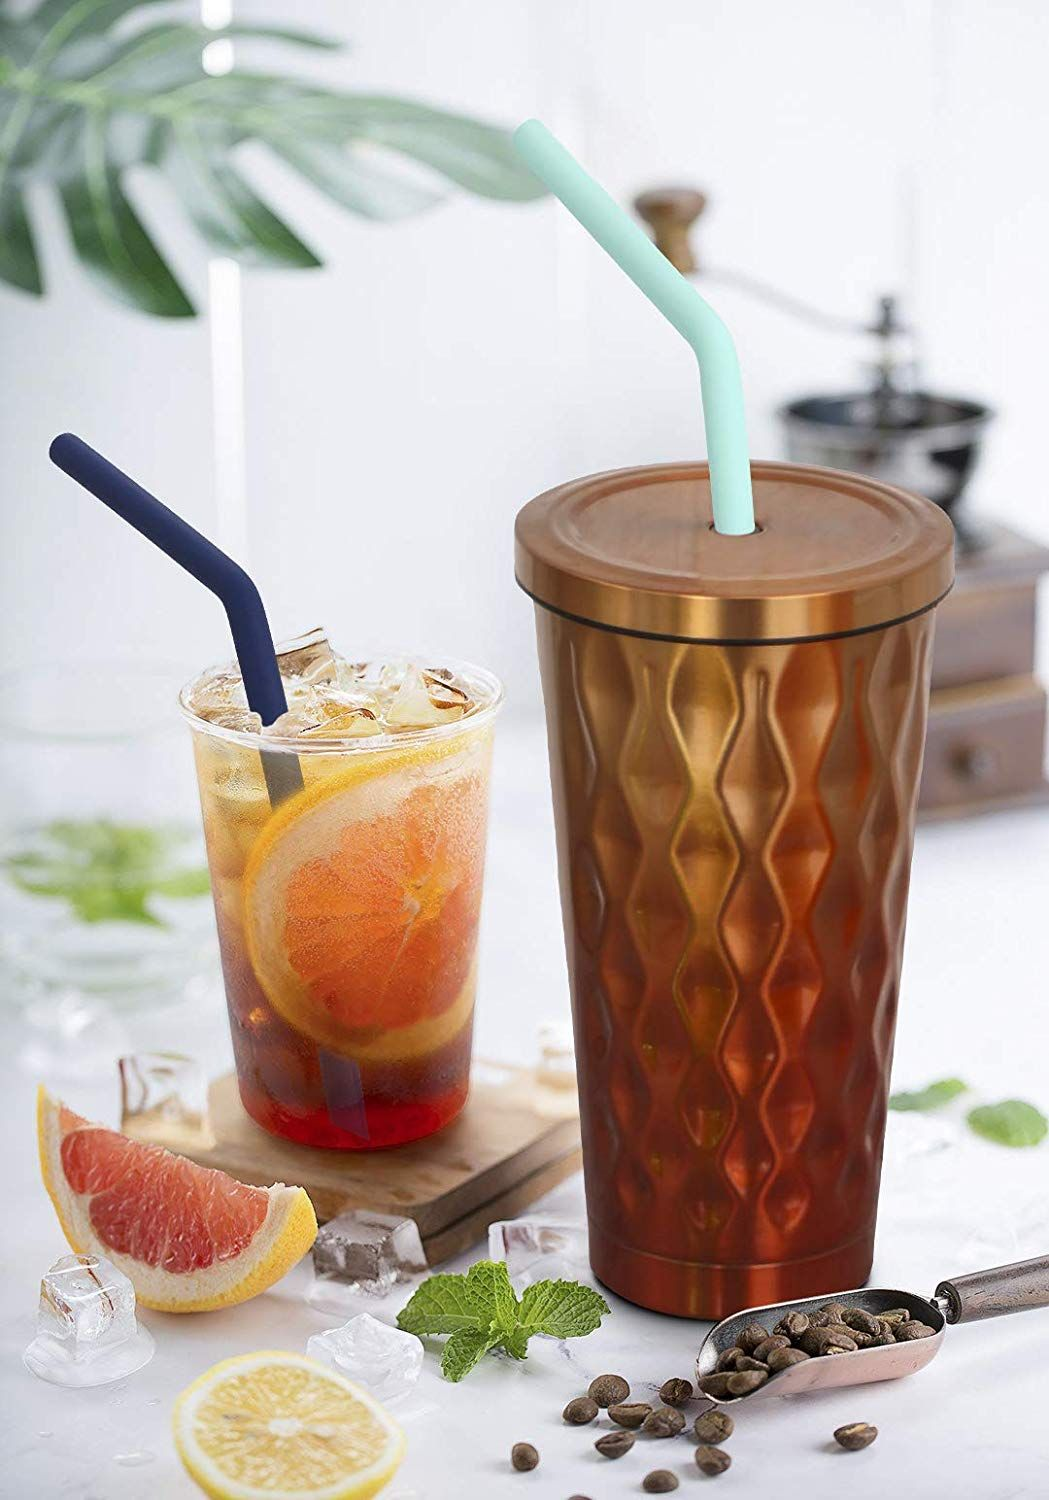 12 pack reusable silicone drinking straws with case